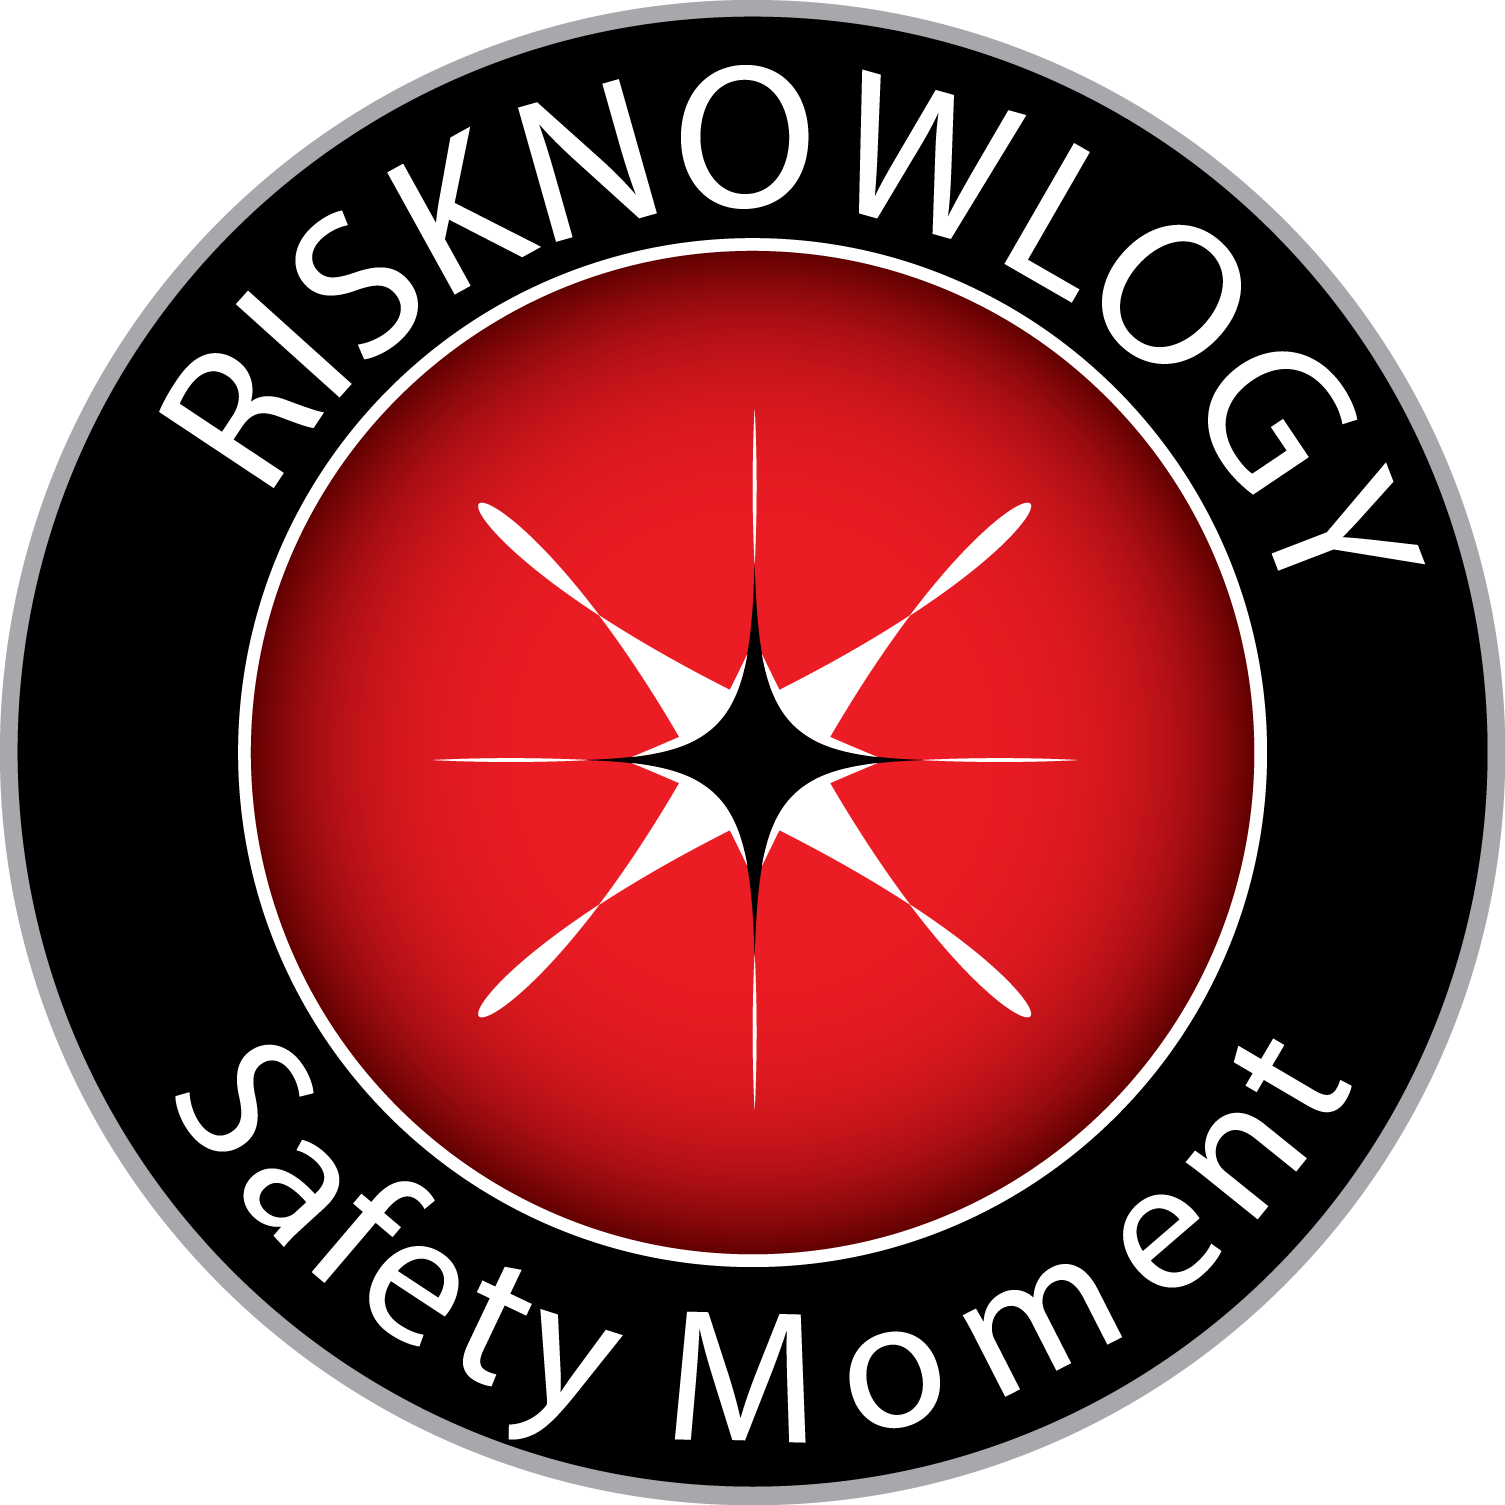 Risknowlogy Safety Moment